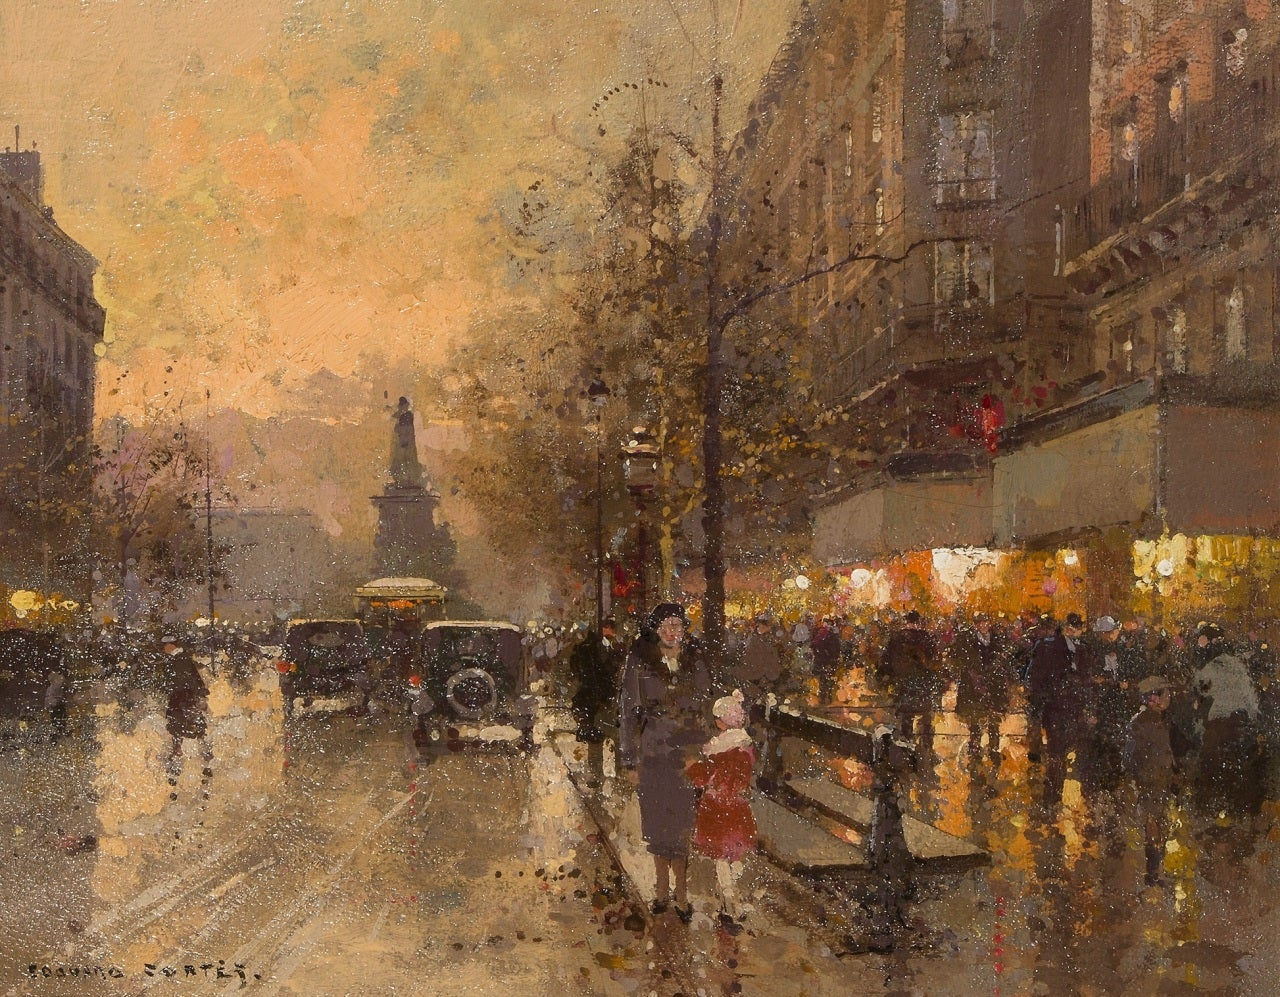 Place de clichy paris by dusk at 1stdibs for Place de clichy castorama